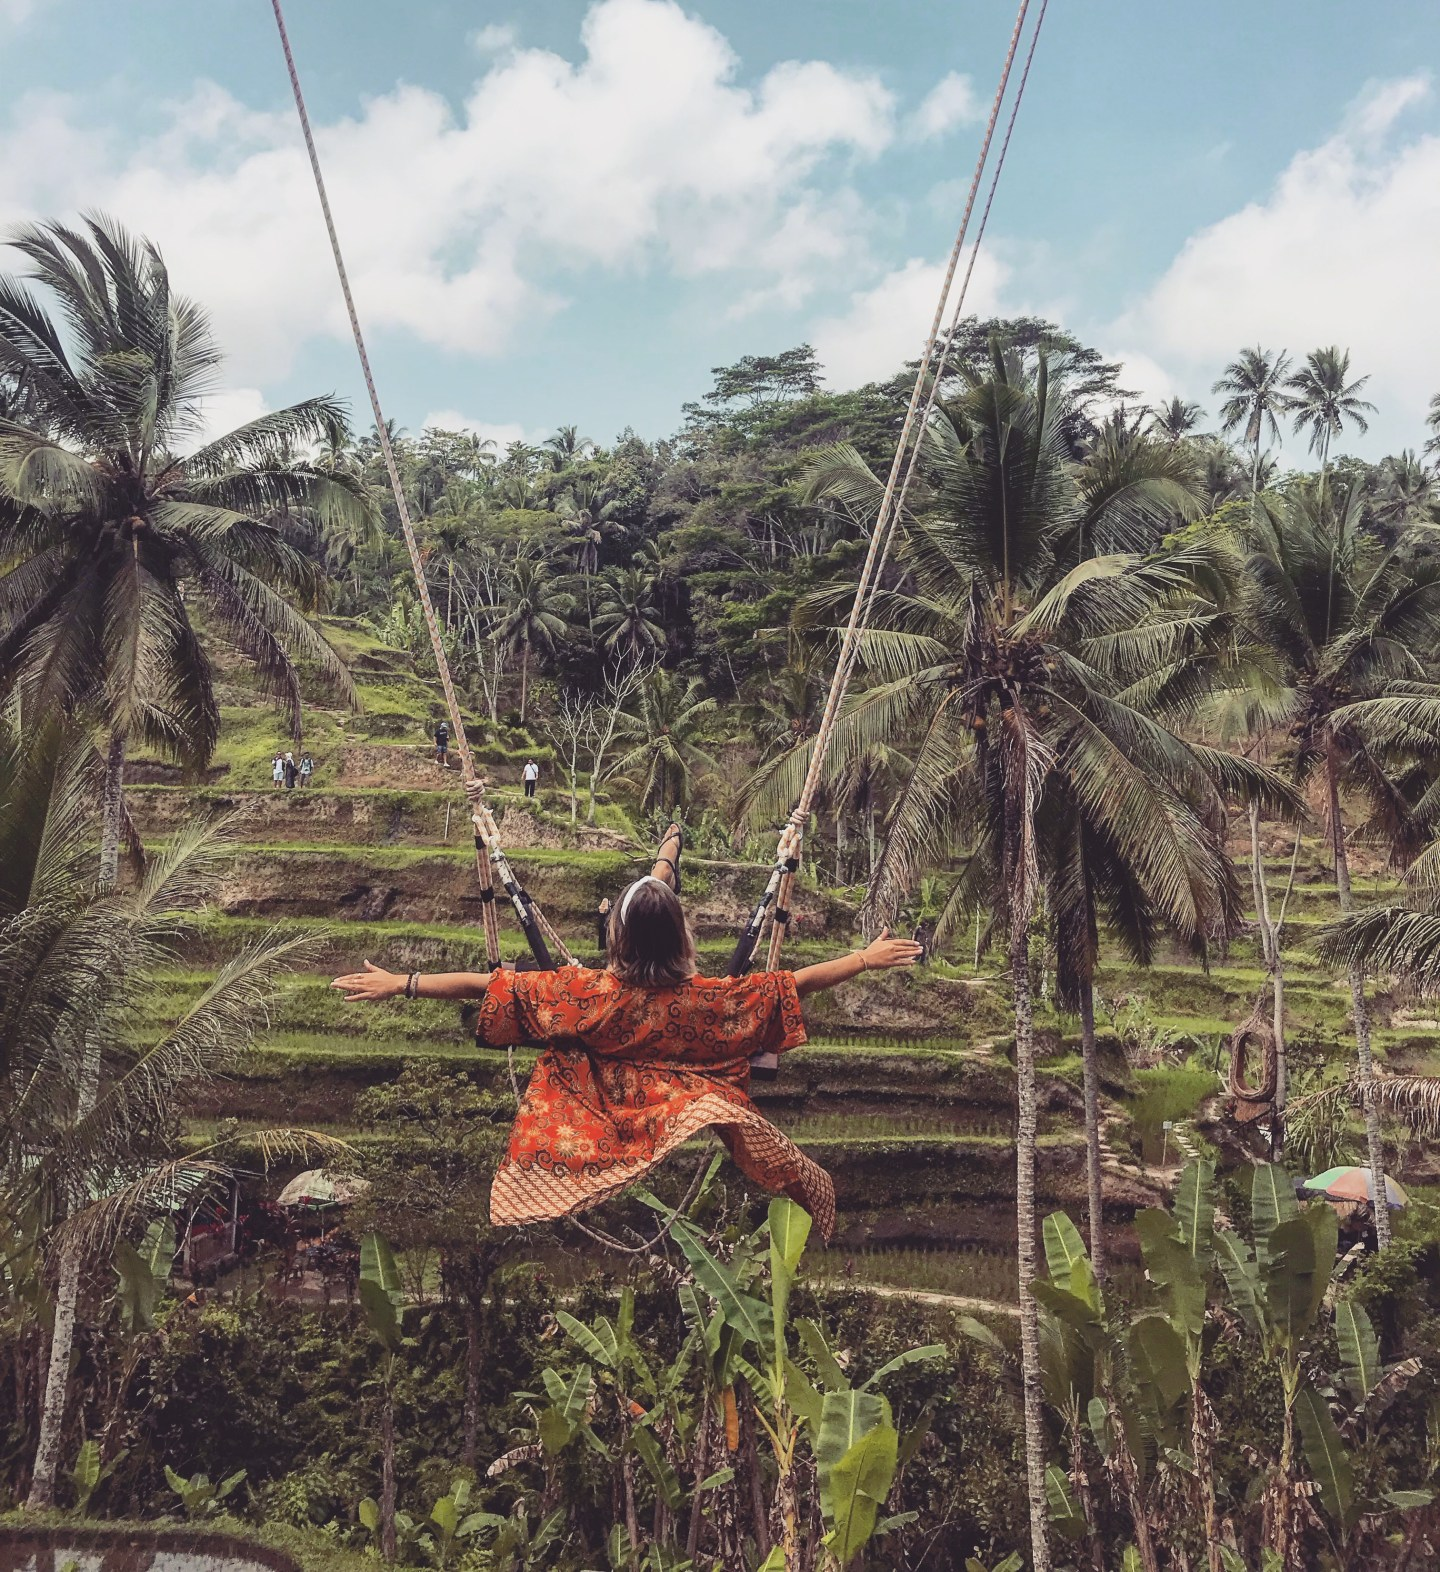 Sara Erb wears an orange kimono in the rice terraces of Tegallalang on Bali island in Indonesia, swinging on the Bali swing above the jungle.